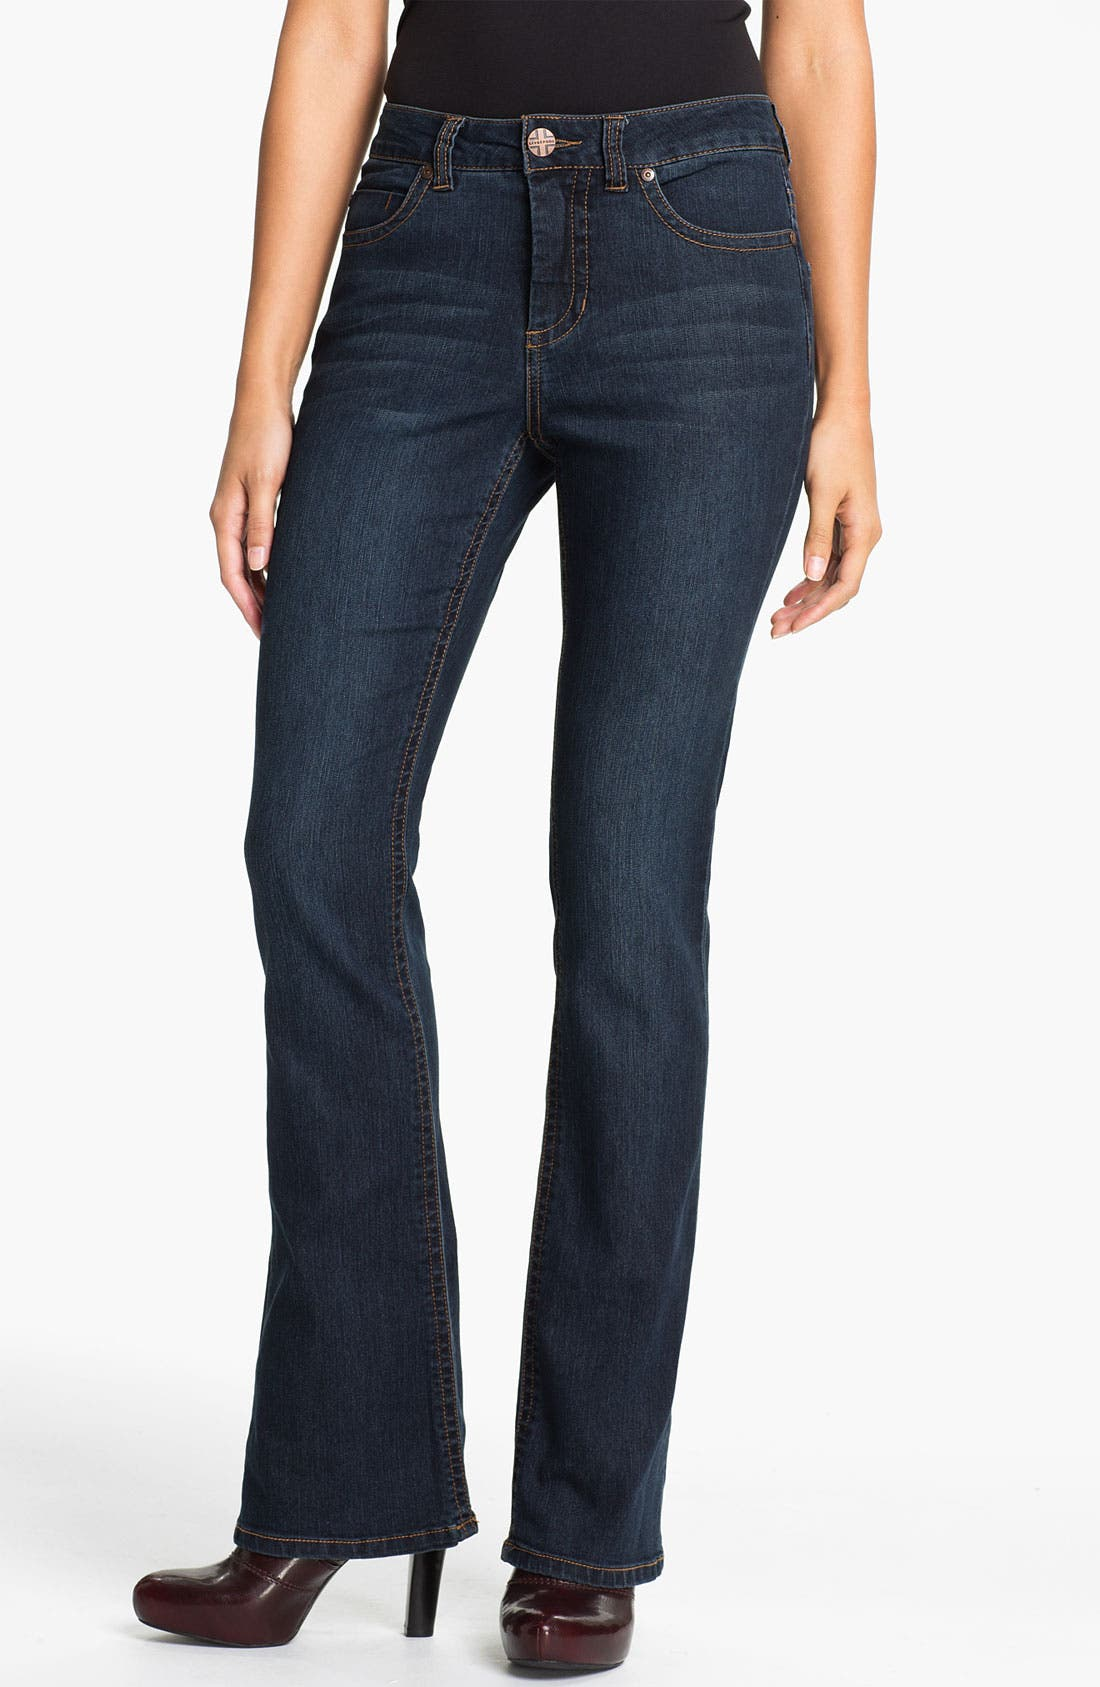 Main Image - Liverpool Jeans Company 'Lucy - Brit' Bootcut Stretch Jeans (Petite)